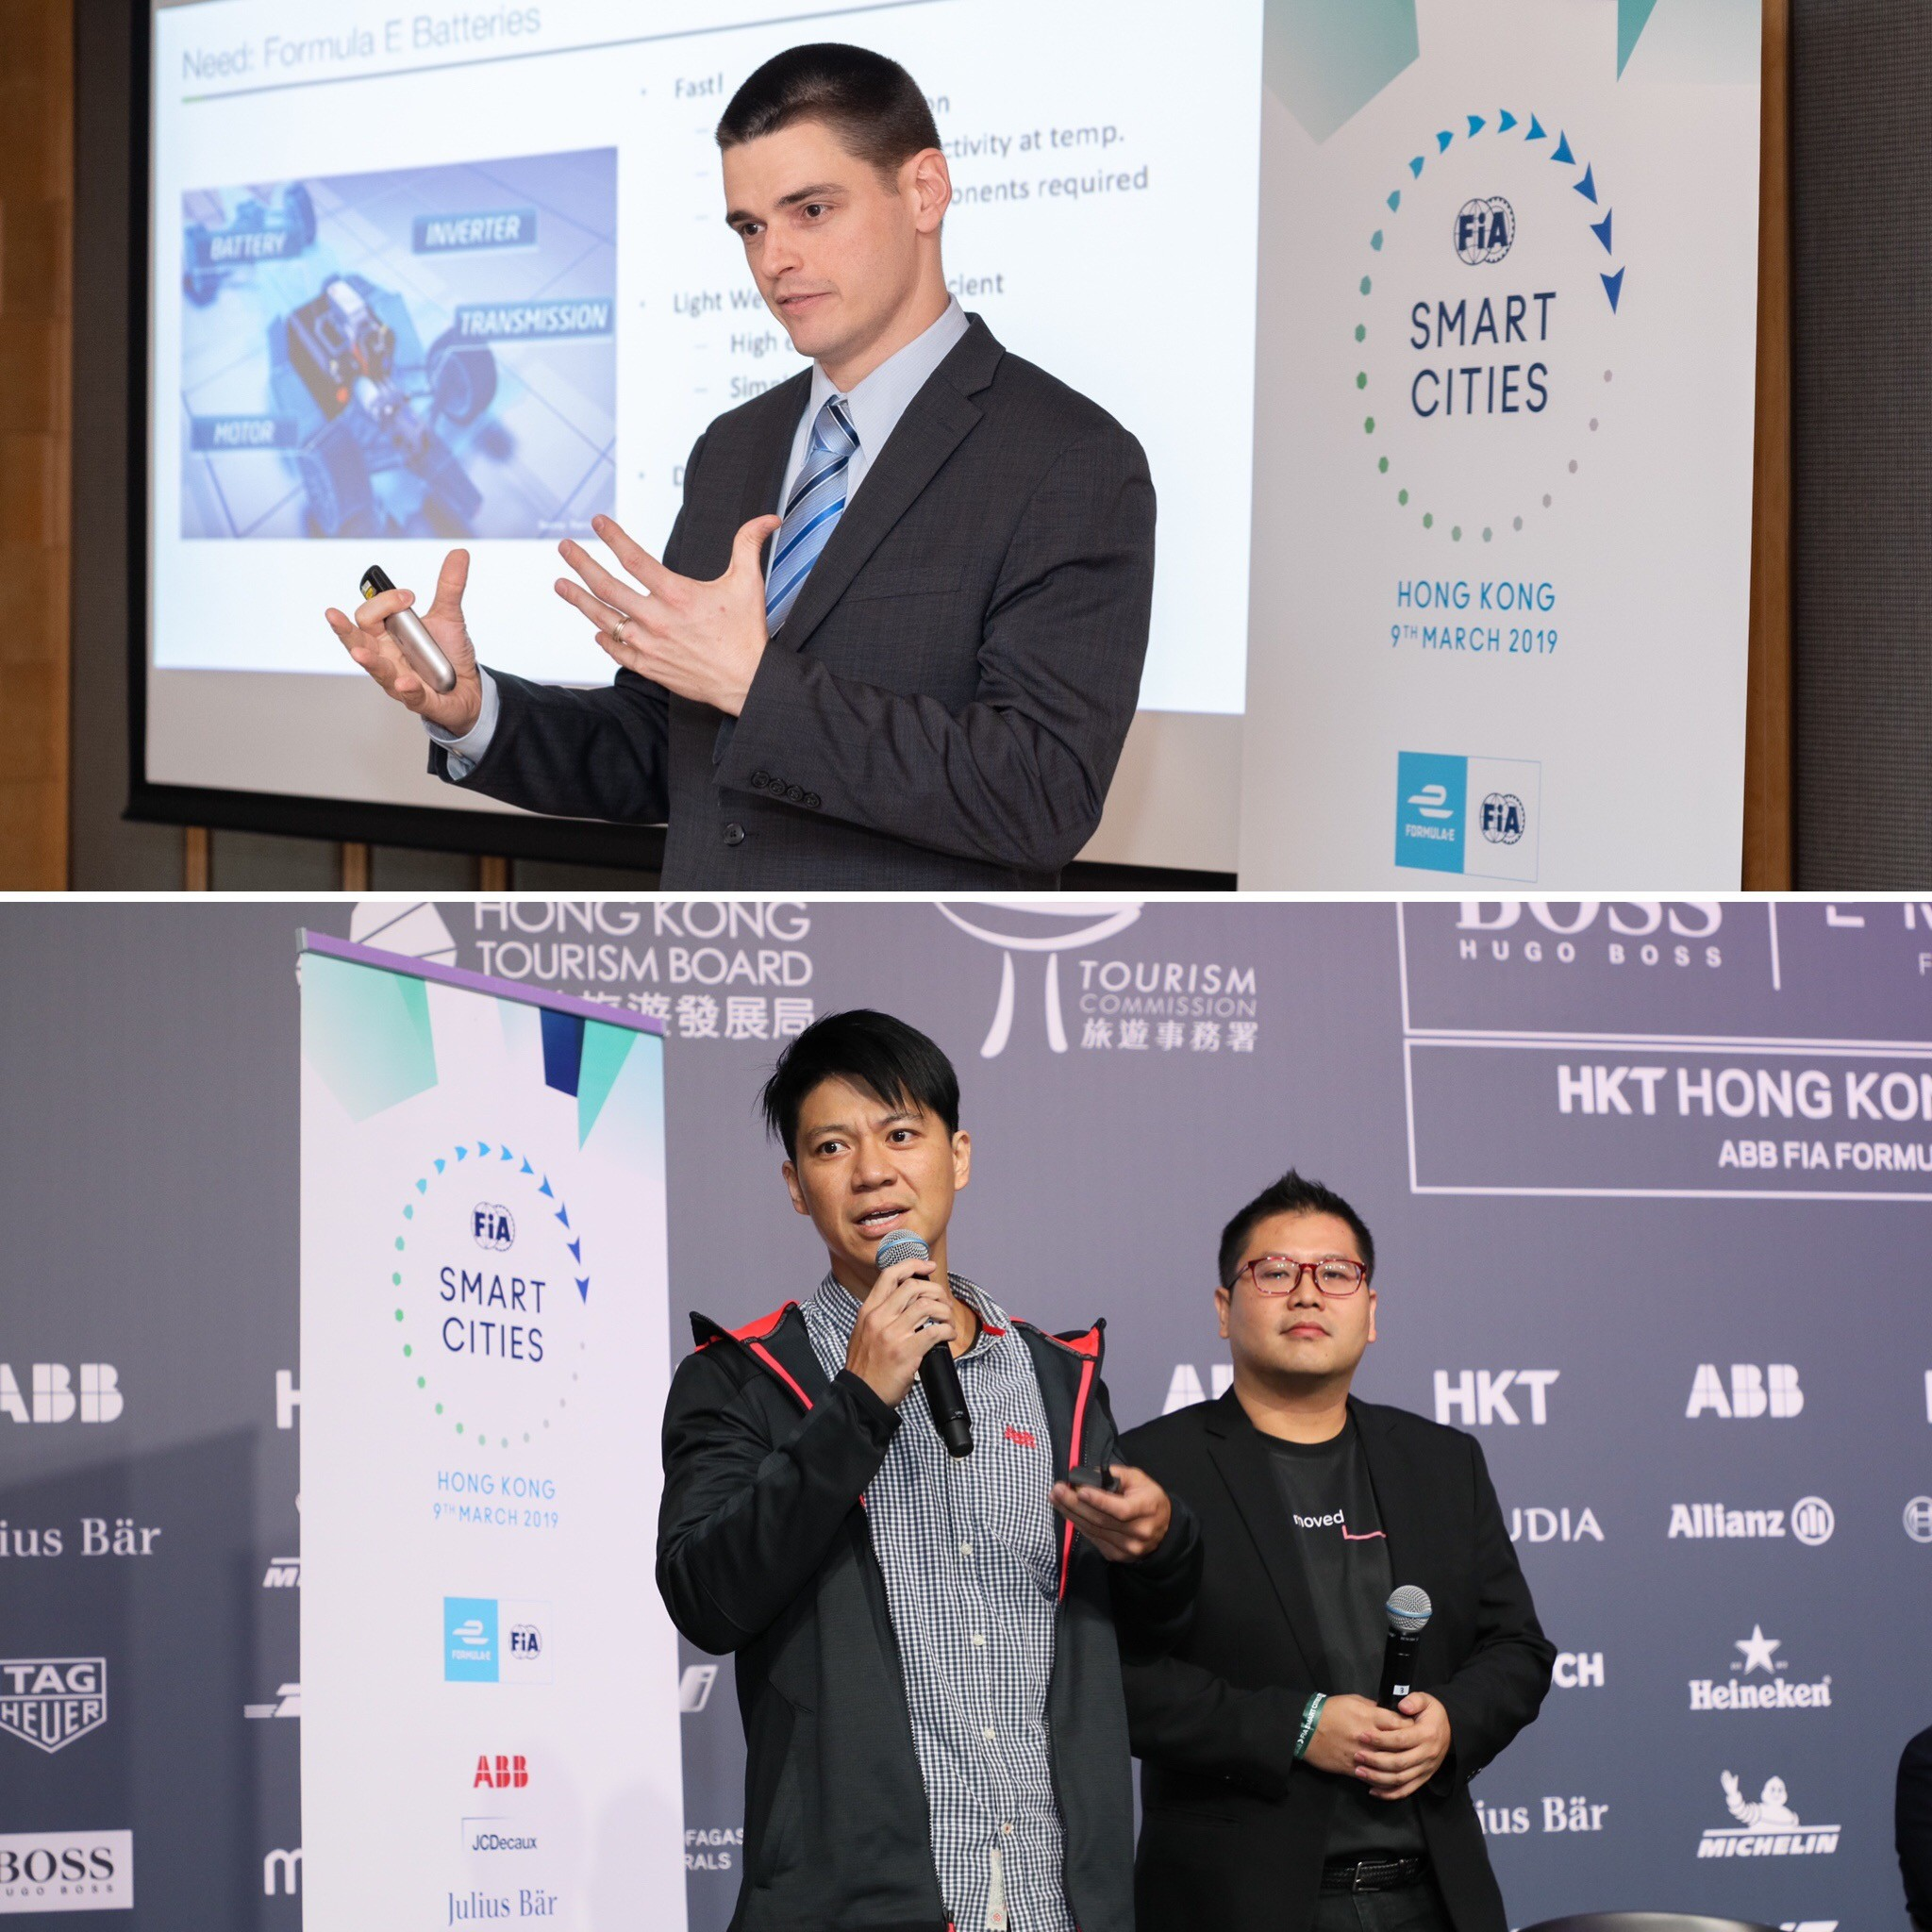 FIA Smart Cities Global Start-Up Contest reaches new heights in Hong Kong